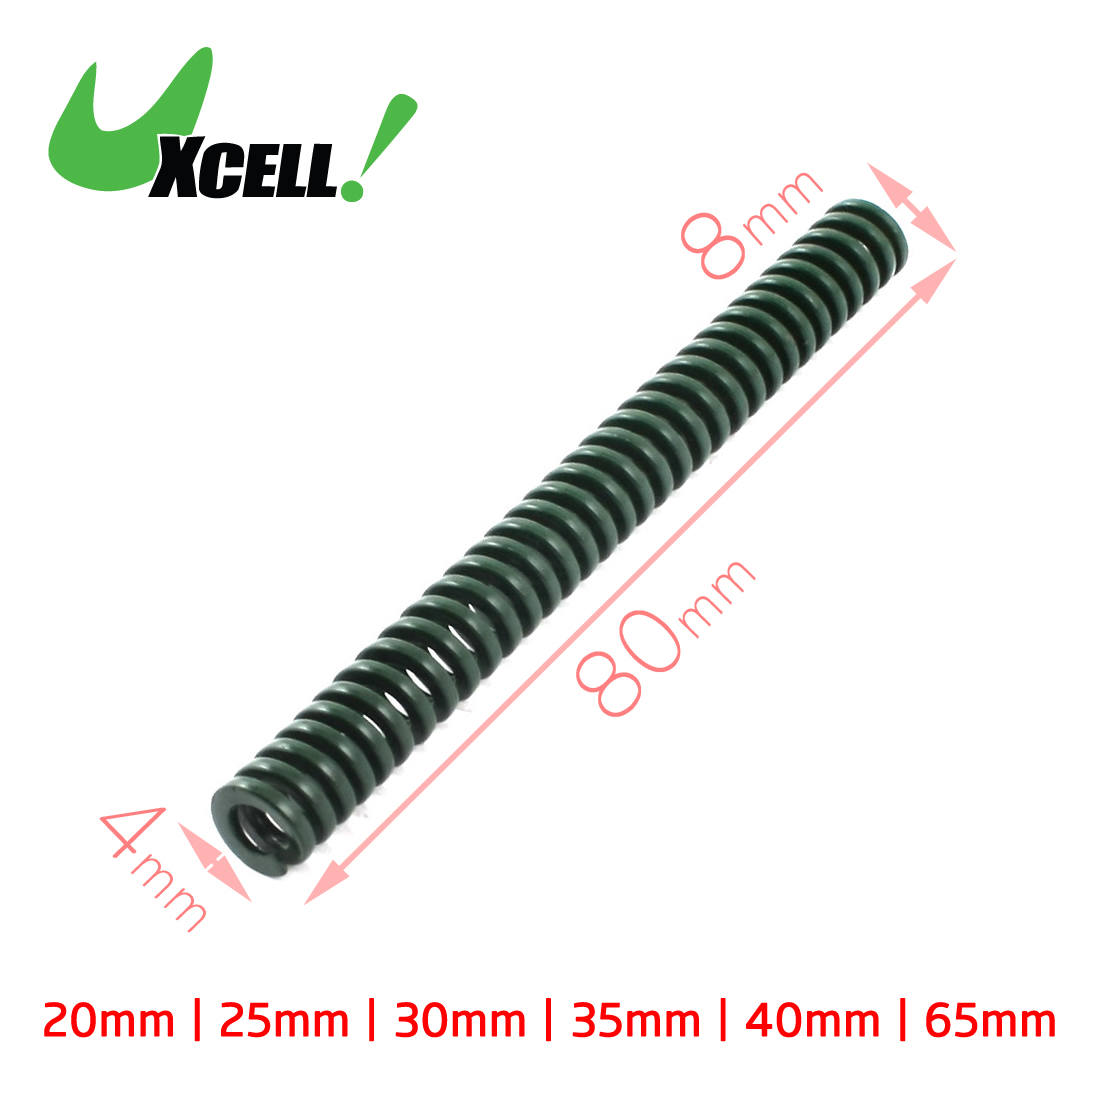 Uxcell 8x4mm 10x5mm Heavy Load Green Spiral Stamping Compression Die Spring Green Long 20mm 35mm 40mm 50mm 65mm 70mm 80mm free shipping 10pcs 20mm x 10mm x 50mm spiral metal stamping compression die spring